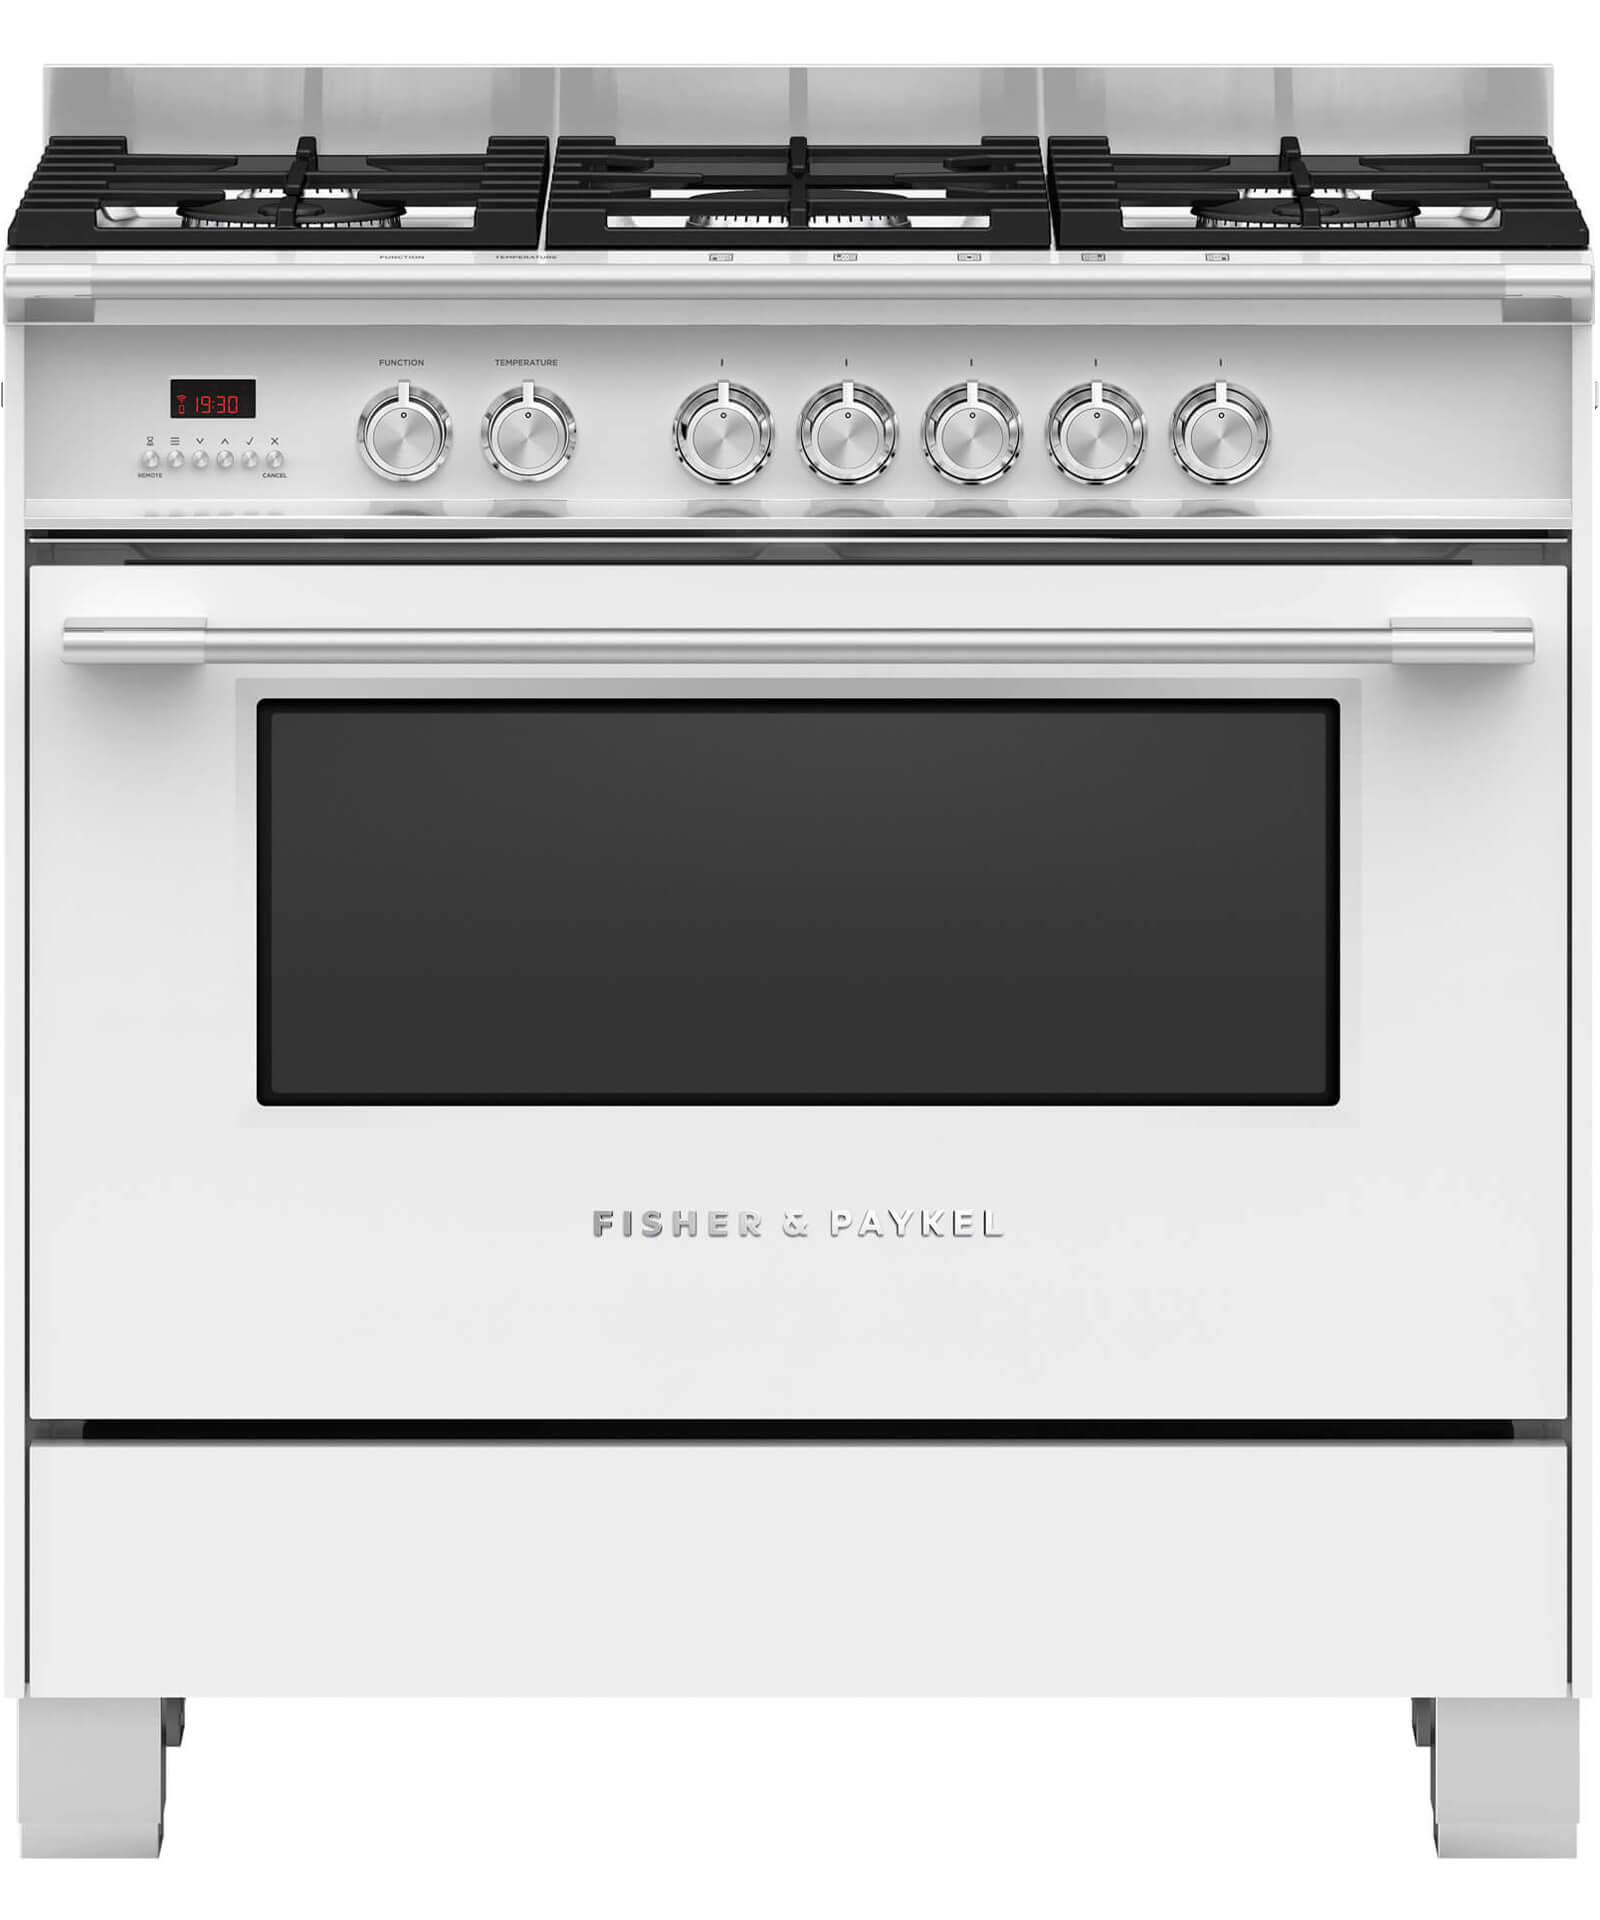 Or90scg4w1 Freestanding Dual Fuel Cooker 90cm Fisher